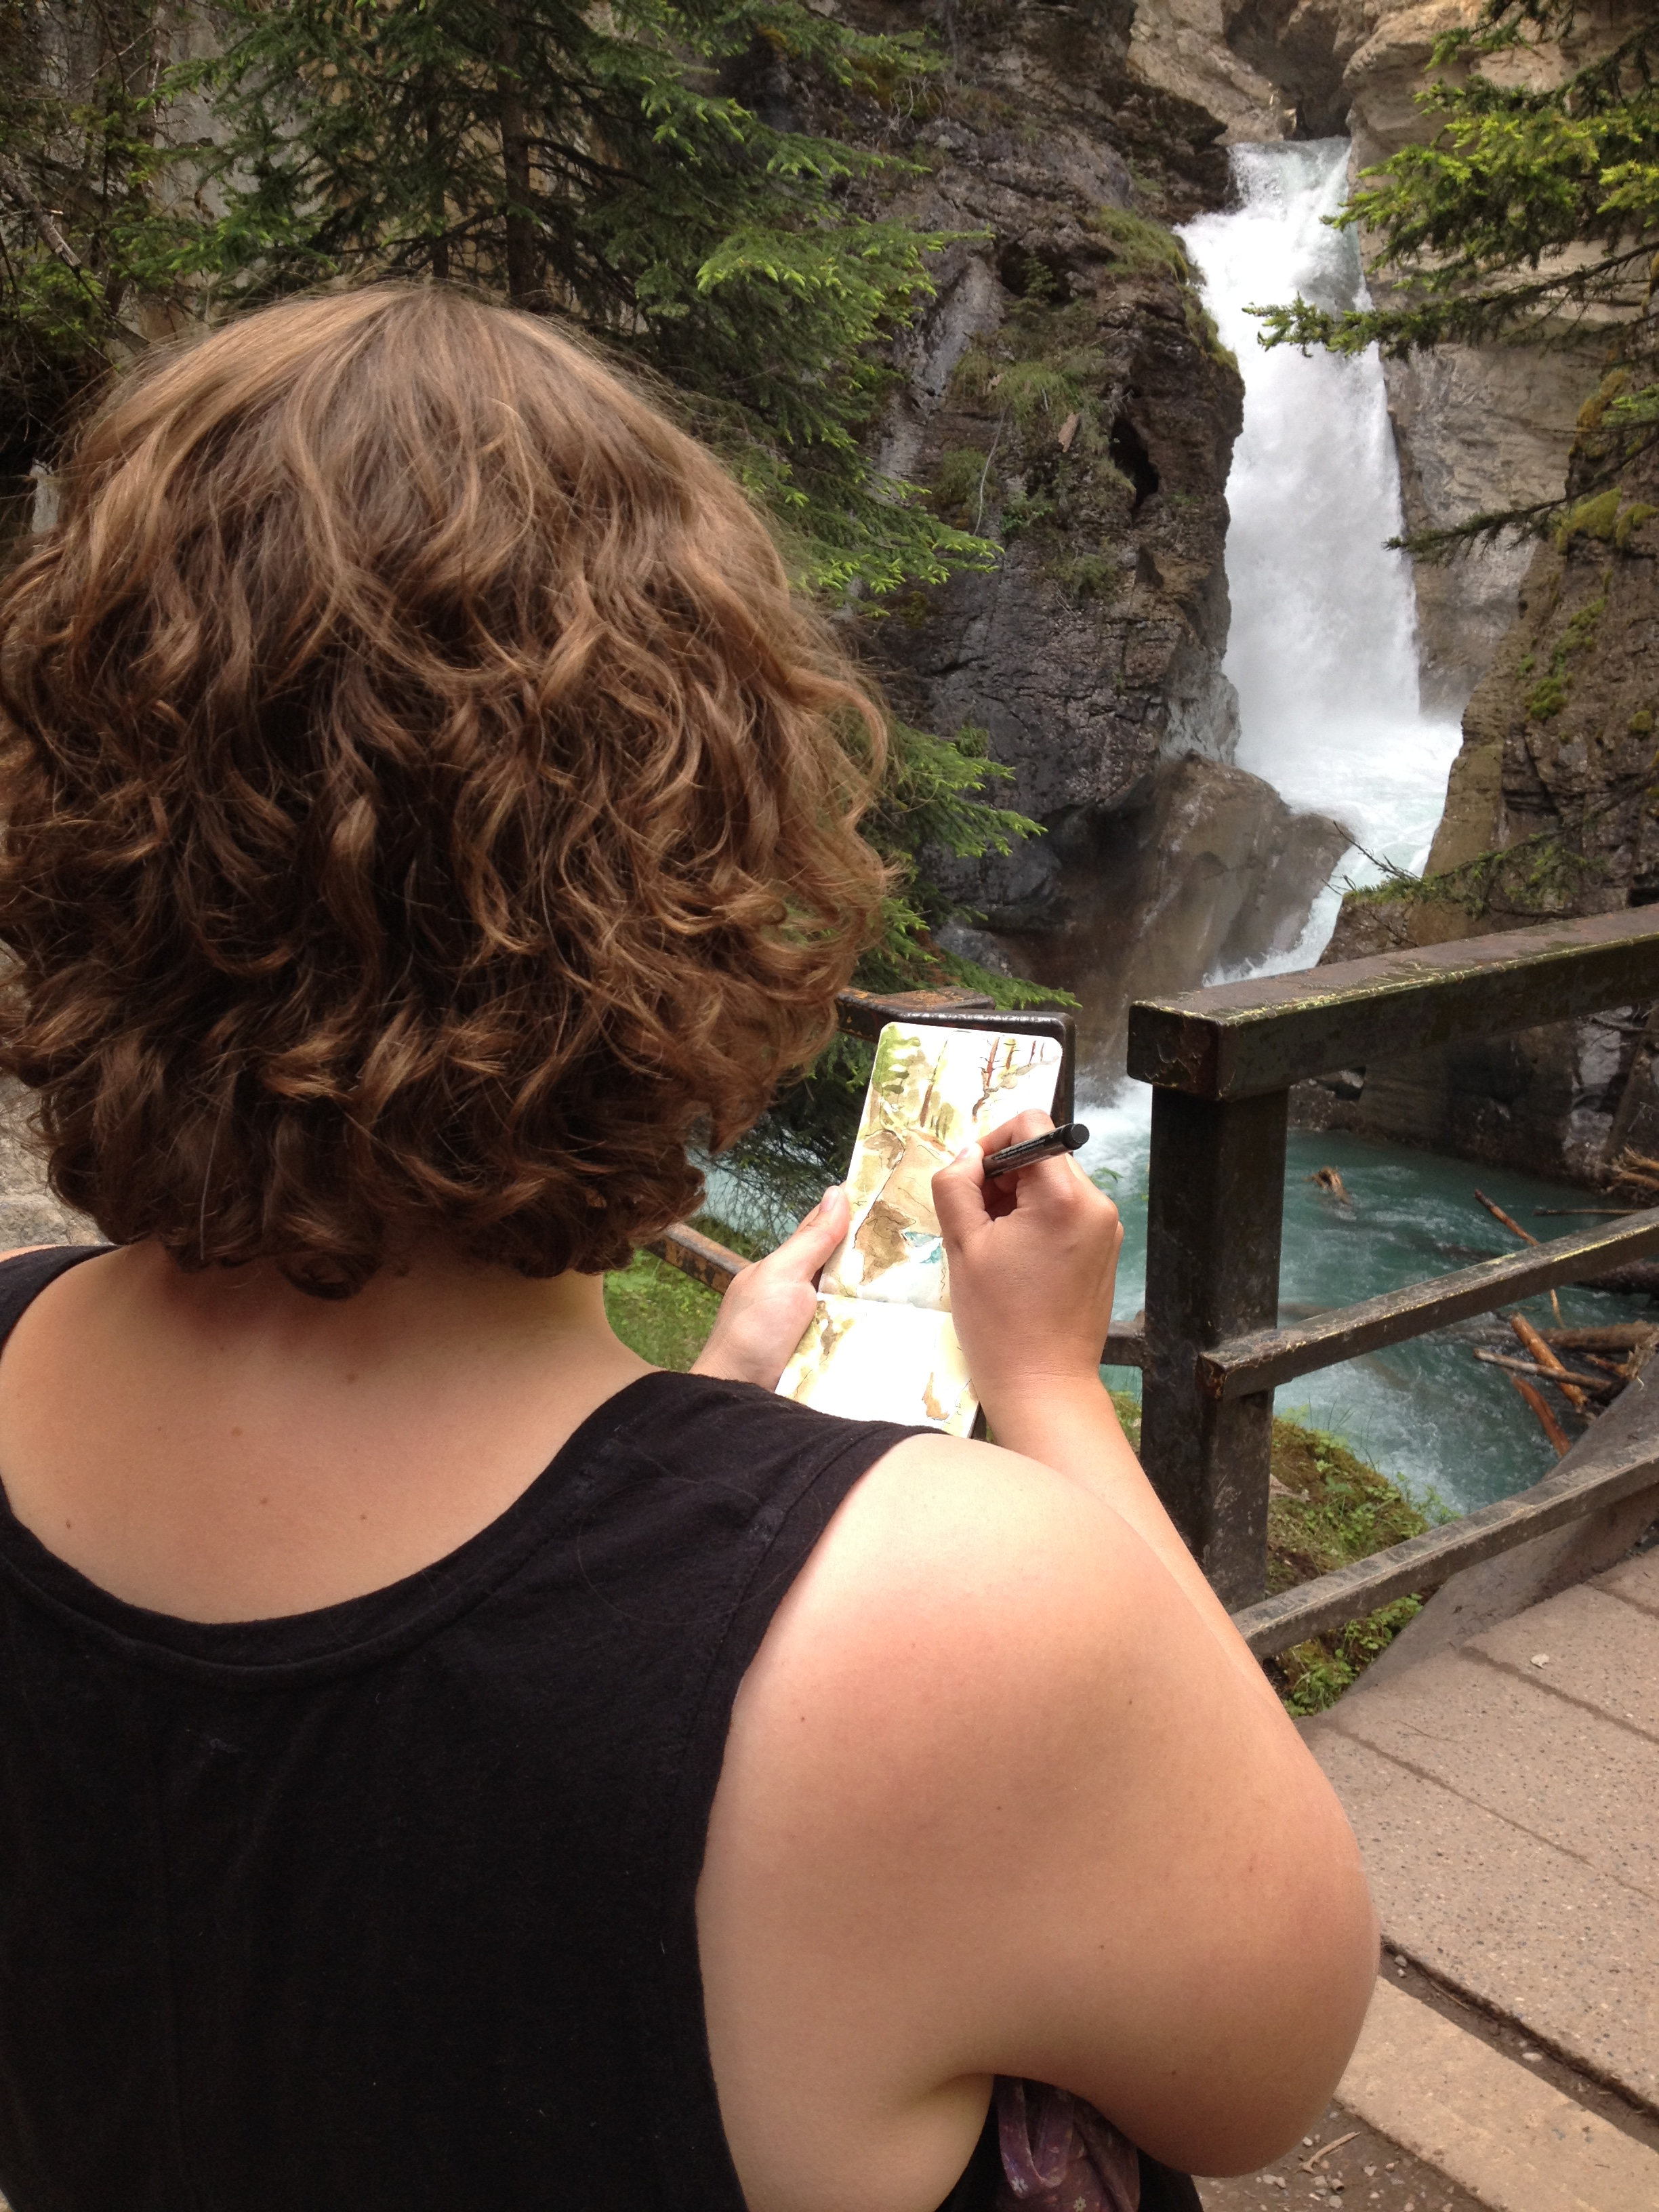 Photo of a woman seen from behind as she sketches while observing a small waterfall on a hiking trail